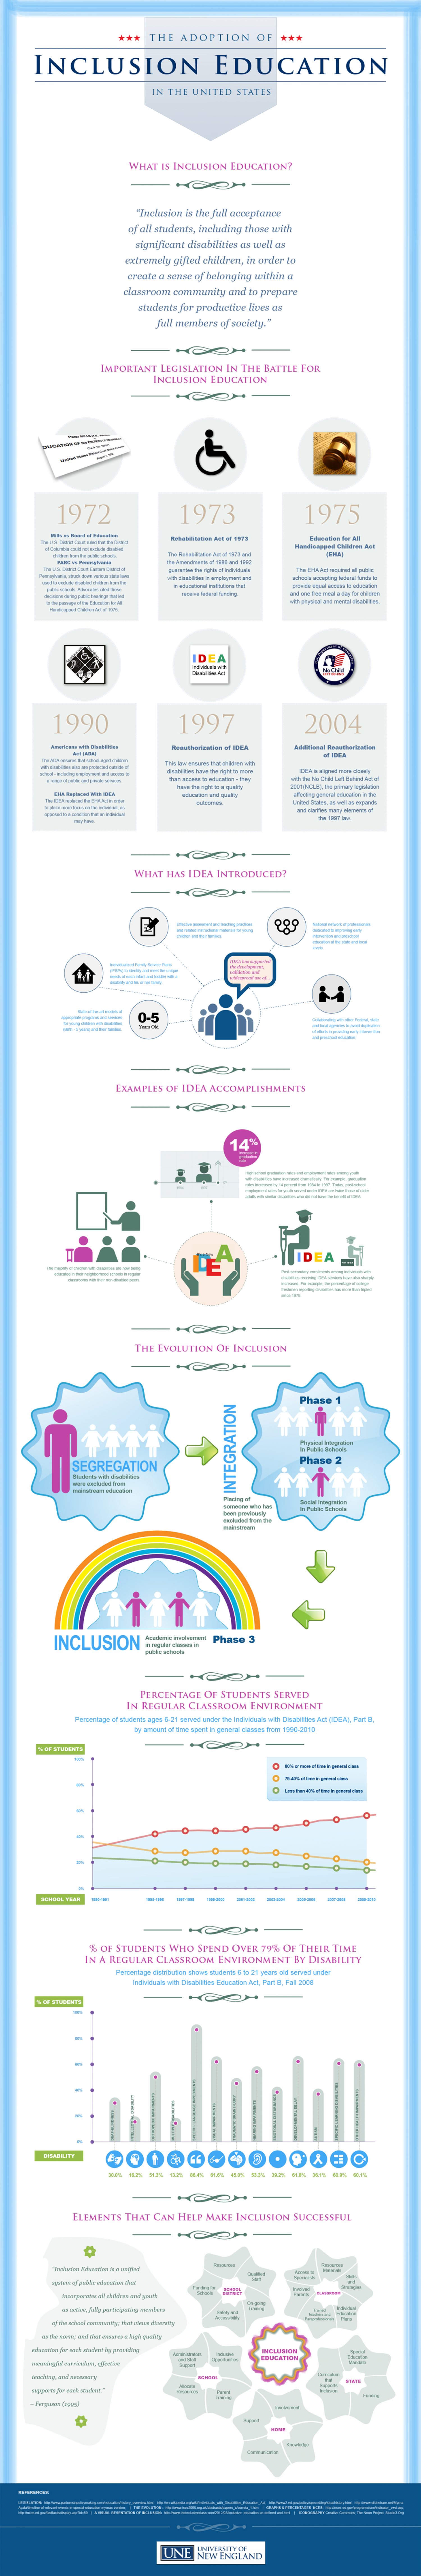 The Adoption of Inclusion Education in the United States Infographic